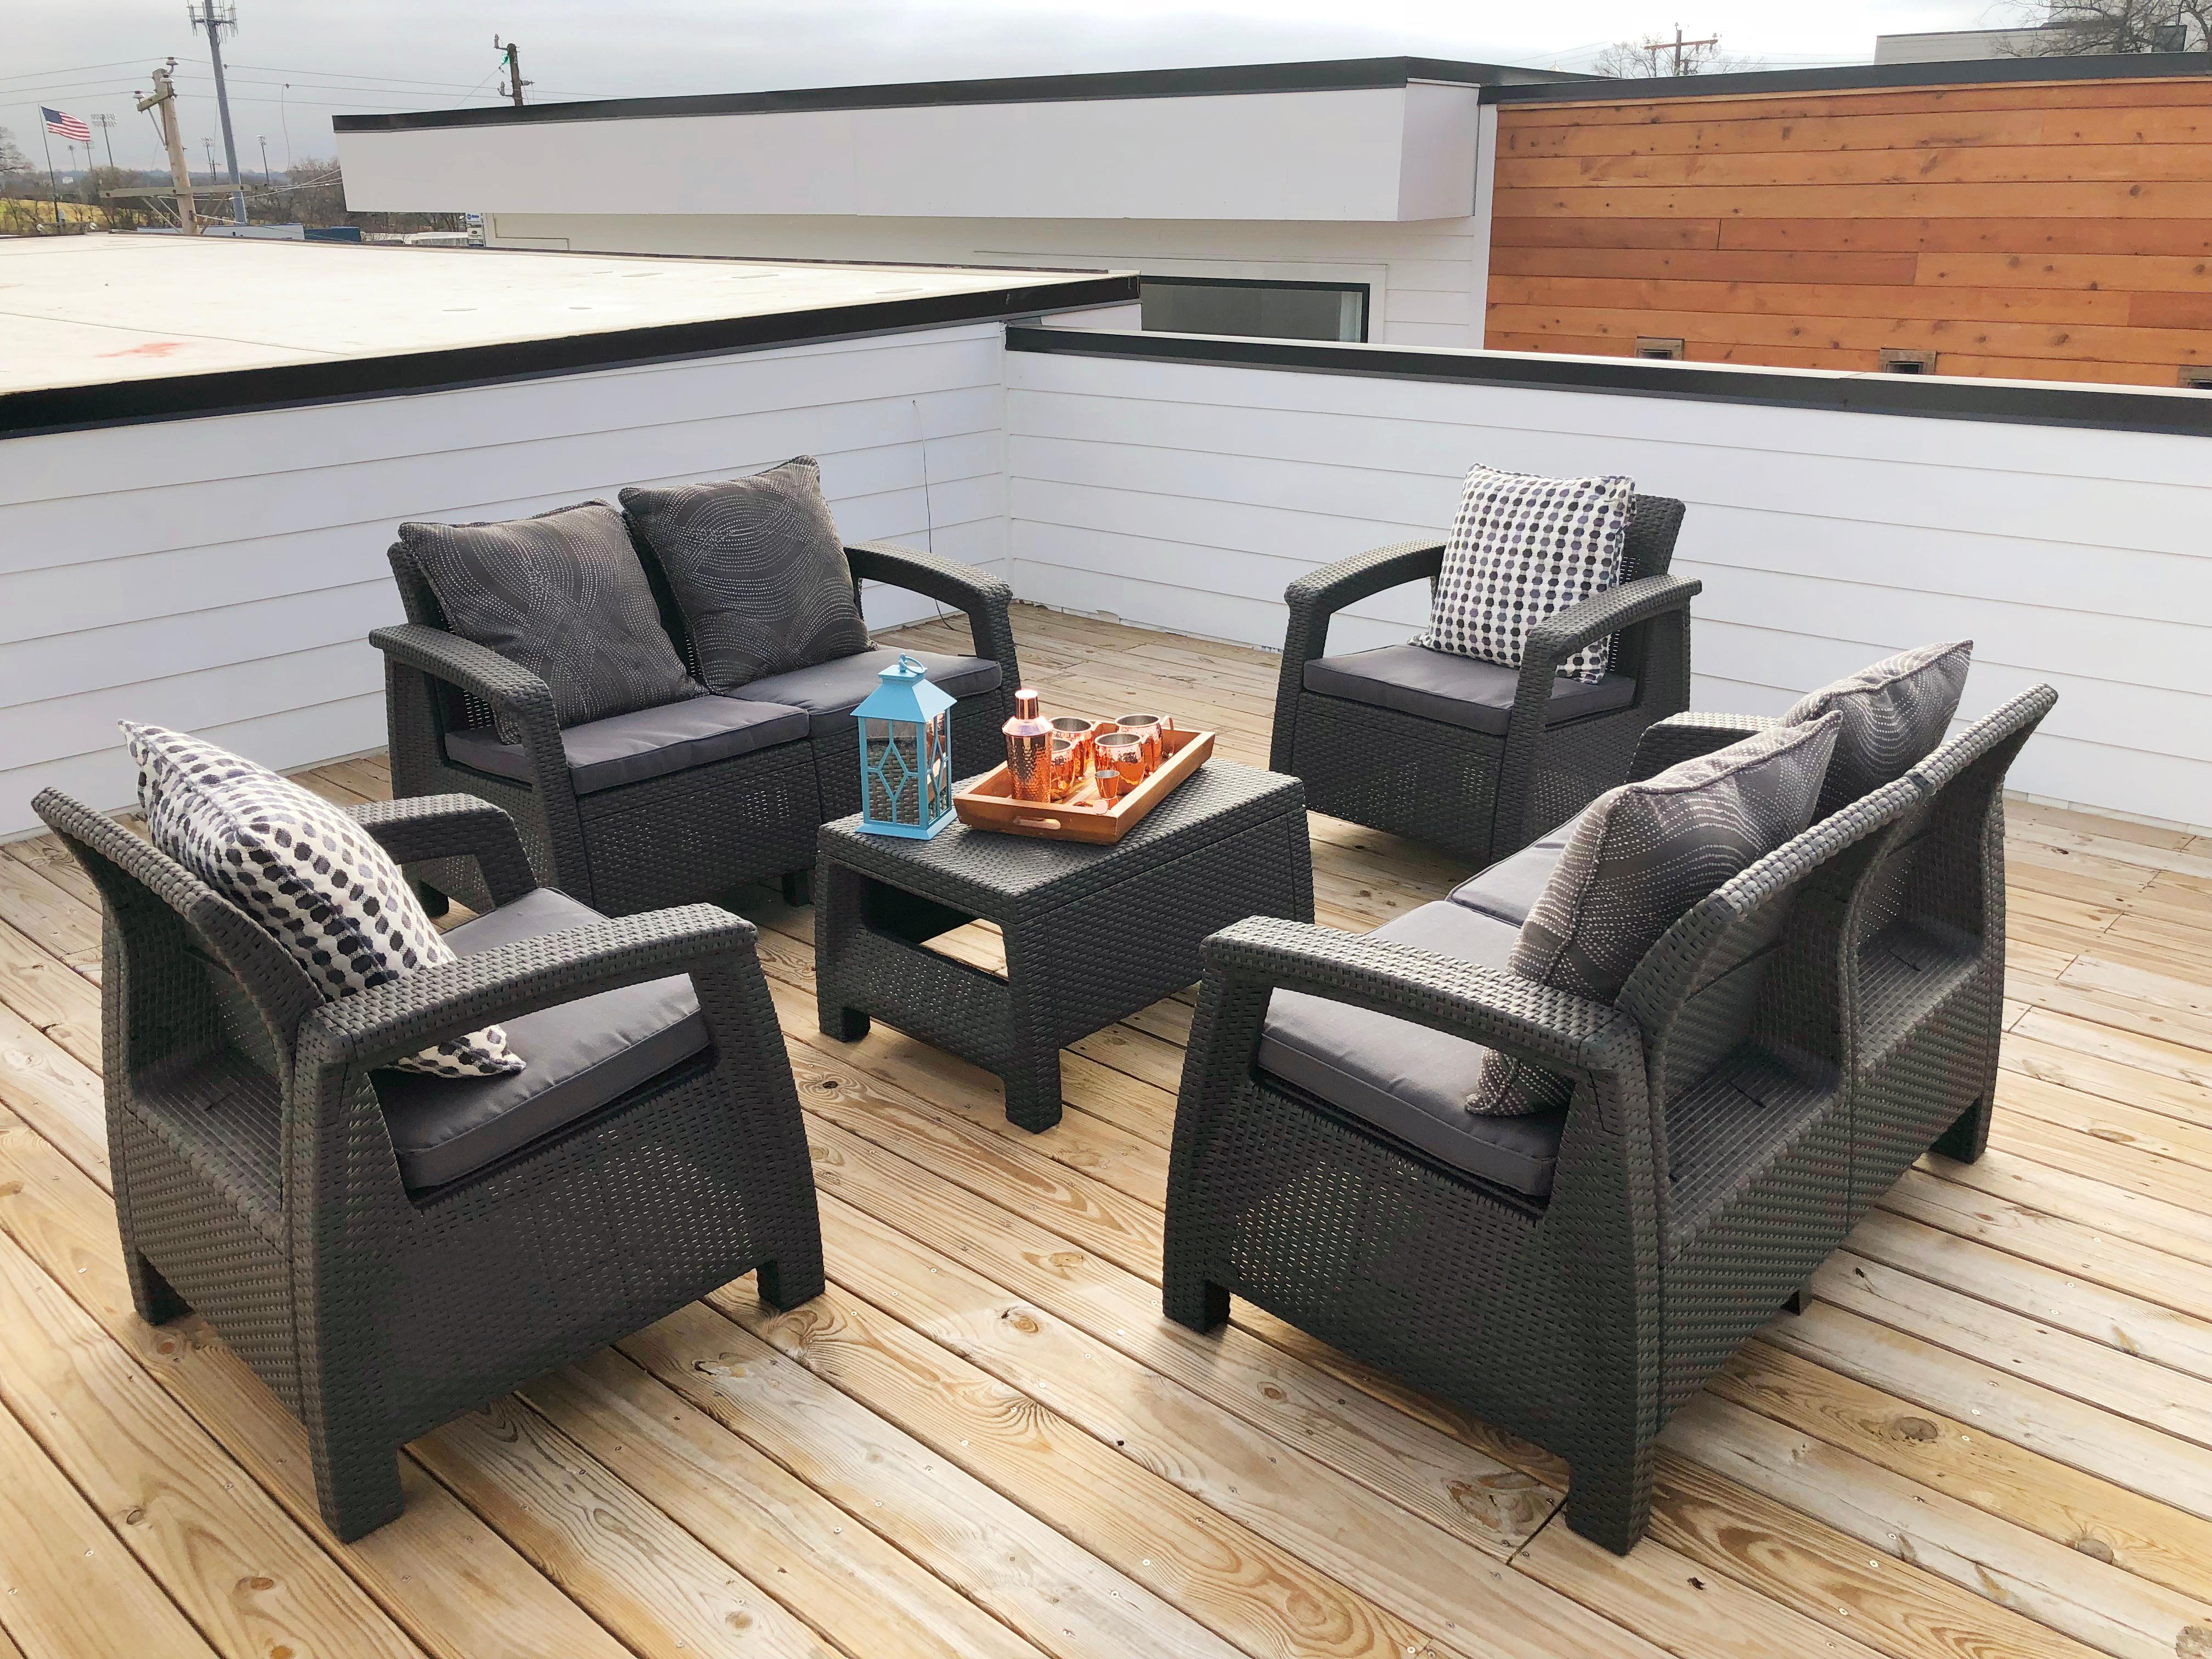 Relax and enjoy the fresh air on the rooftop patio.